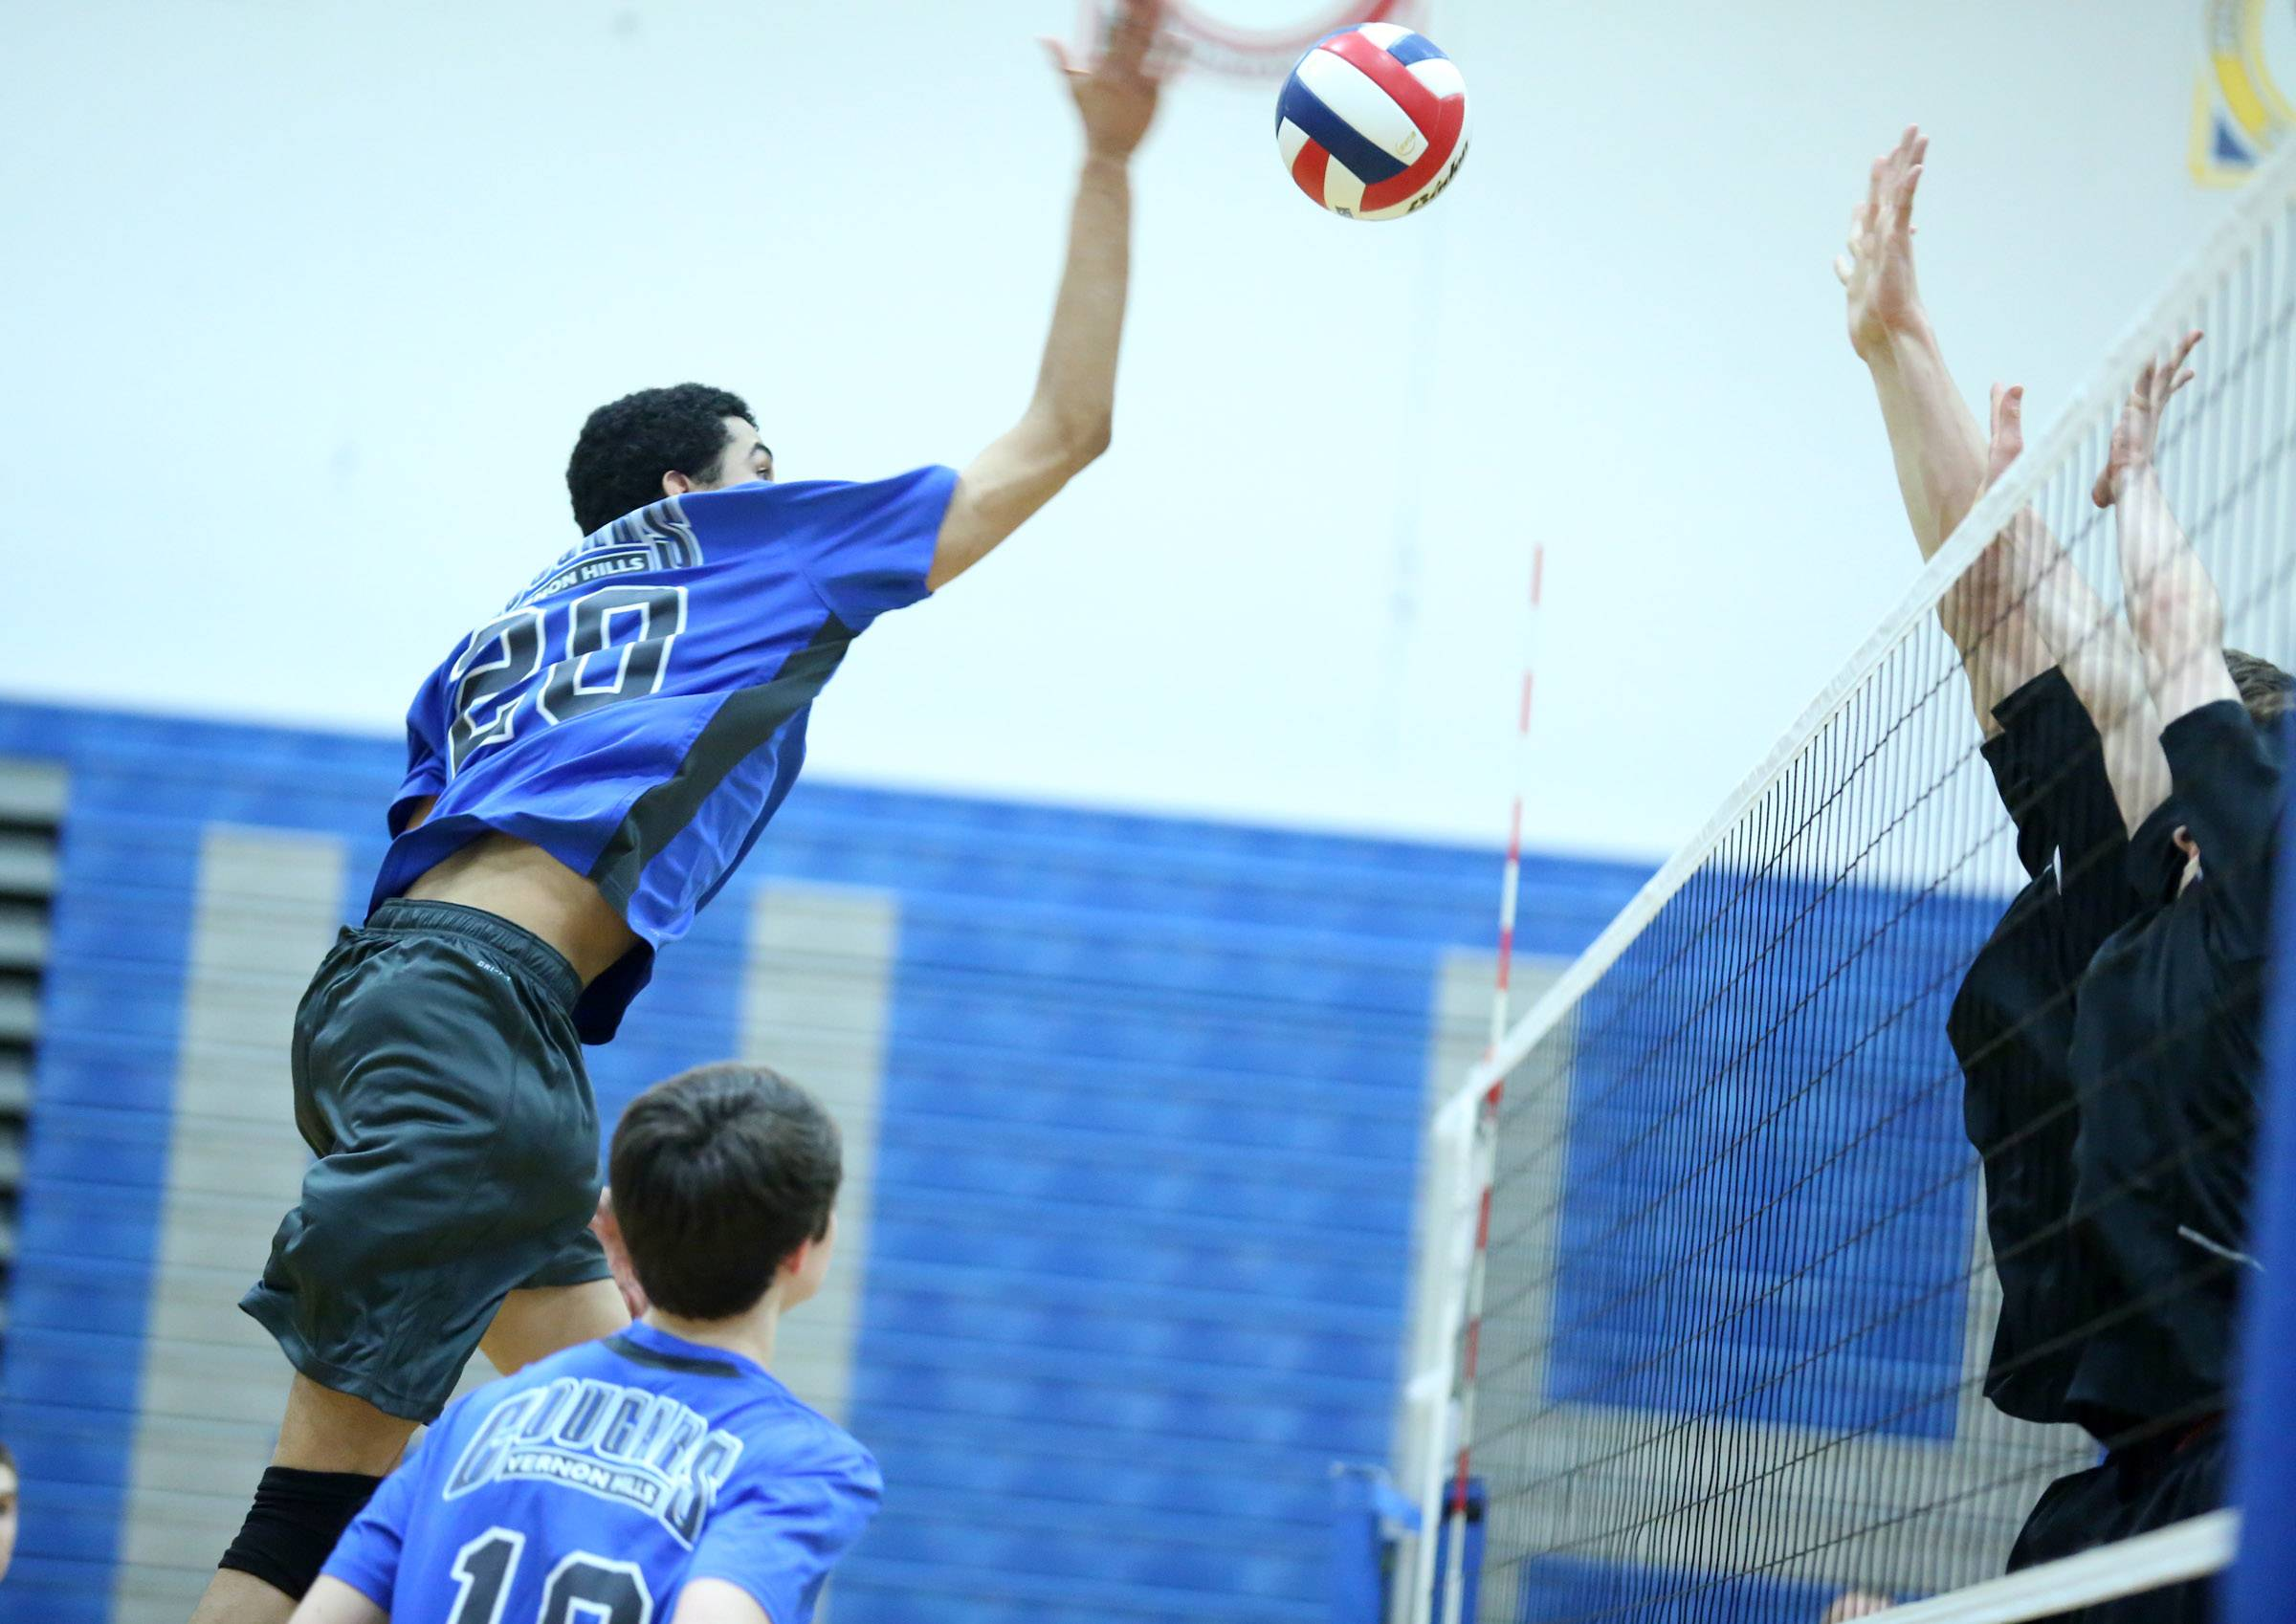 Vernon Hills' Lem Turner spikes the ball against Hersey on Friday at Vernon Hills.